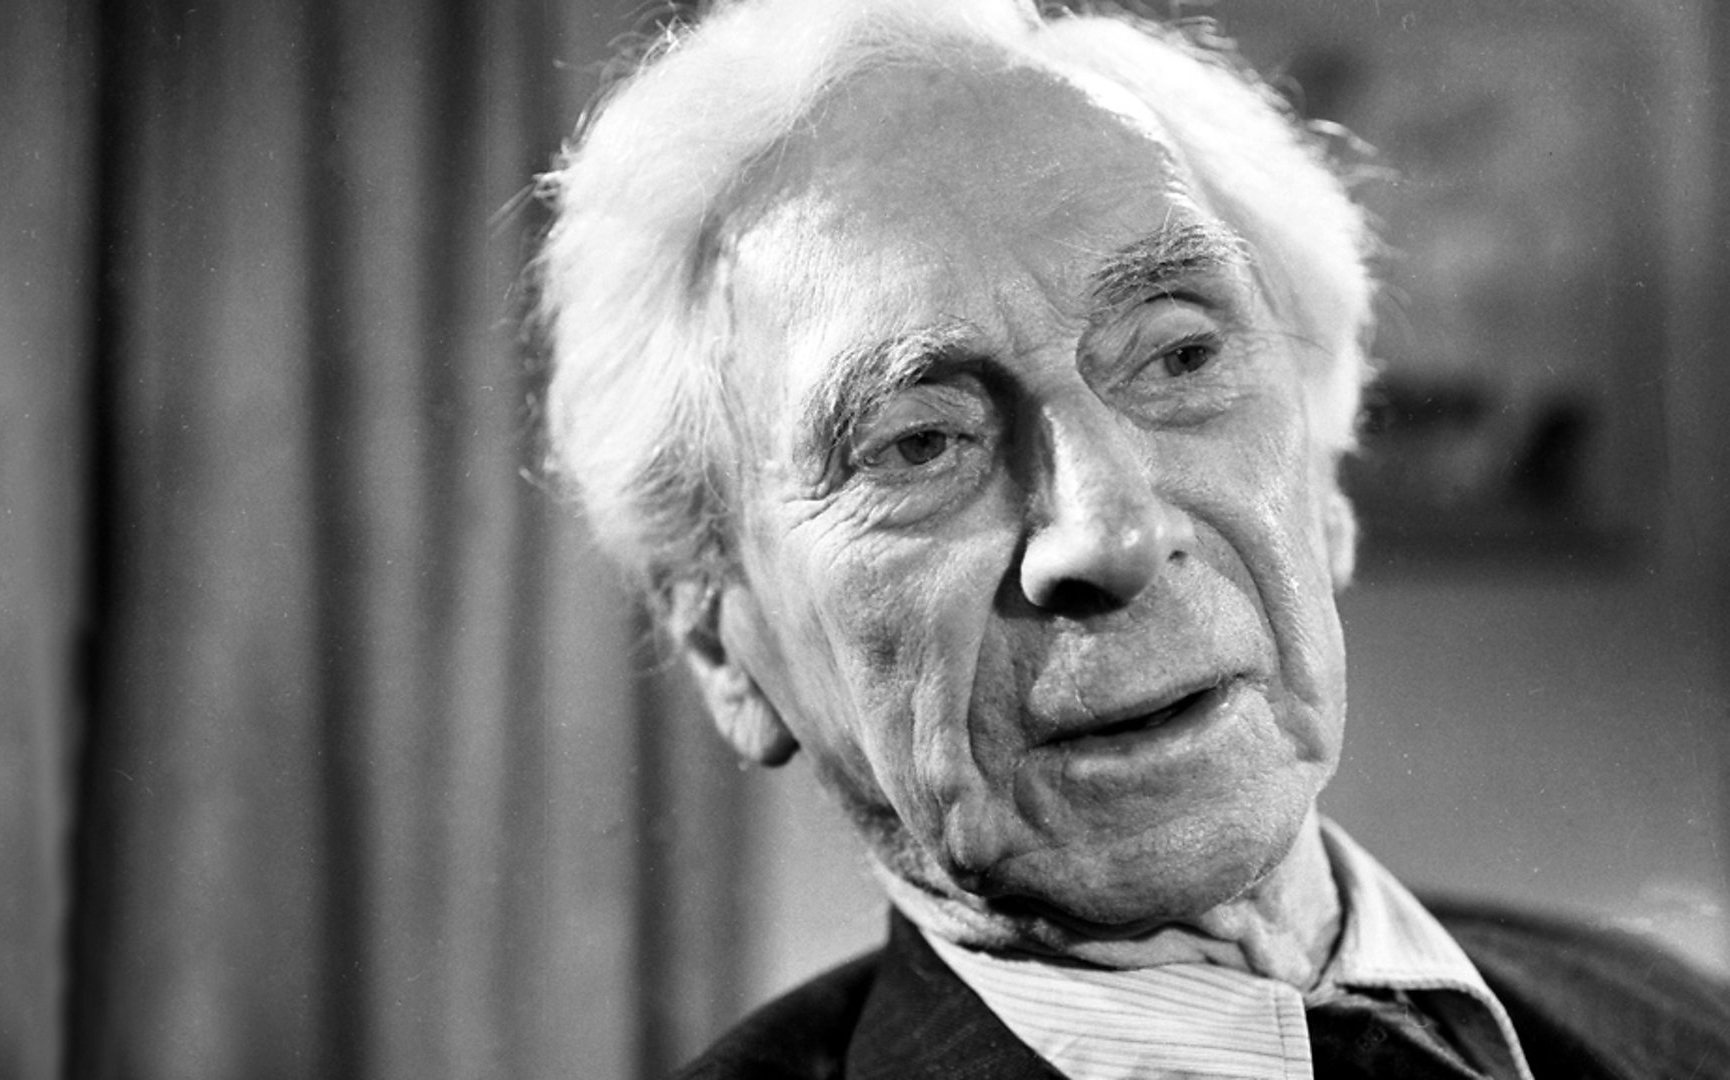 bertrand russell skeptical essays Why i am not a christian – bertrand russell introductory note: russell delivered this lecture on march 6, 1927 to the national secular society, south london branch, at battersea town hall.